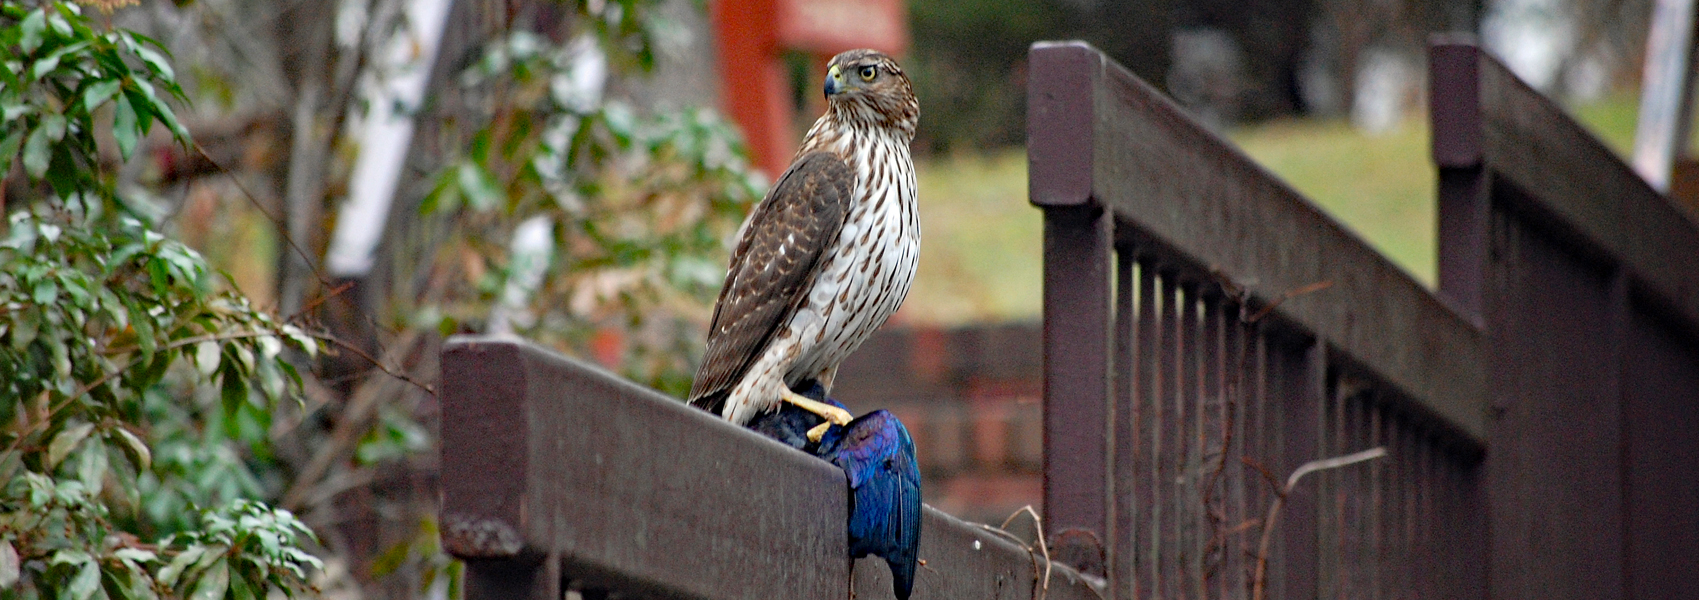 A Cooper's hawk holds a recently caught grackle